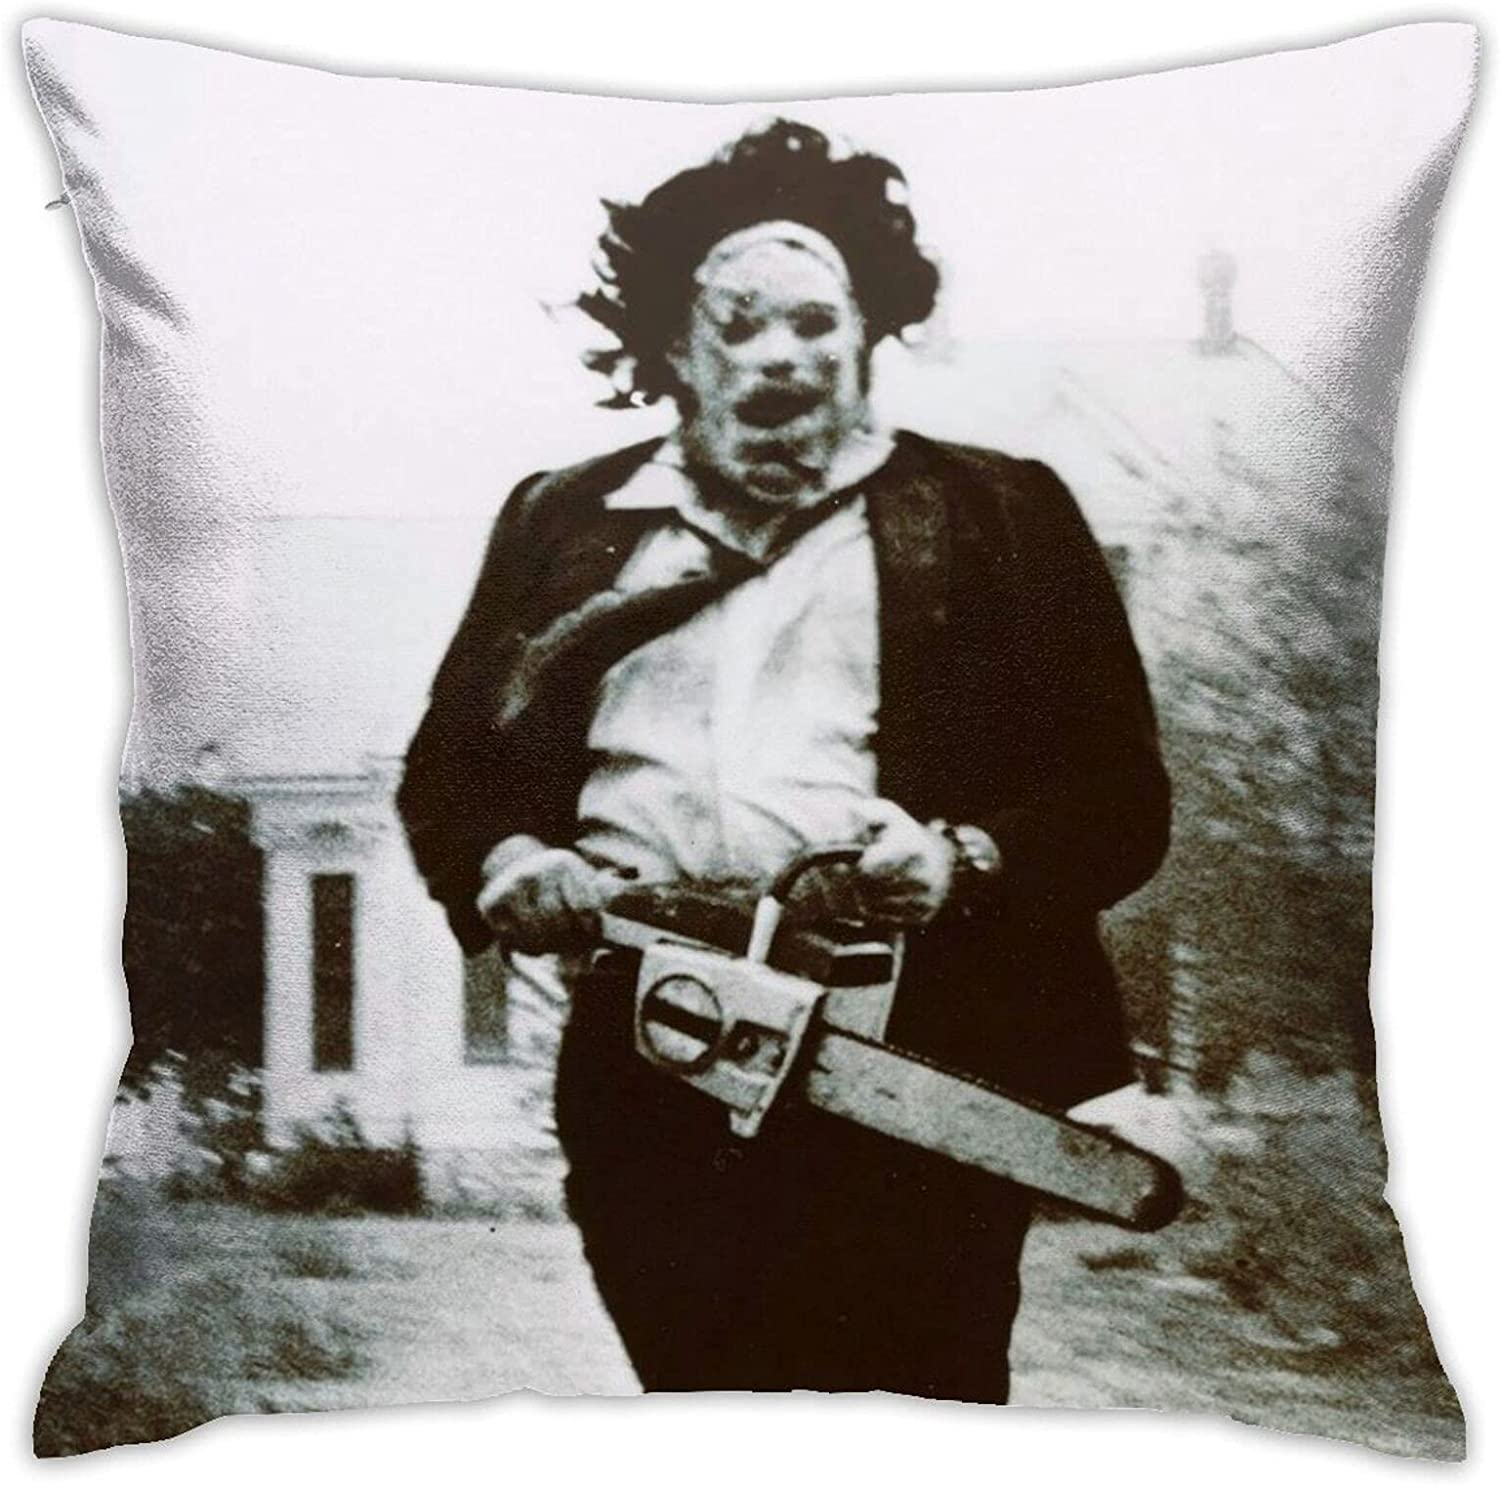 yunsu Hostel Leatherface Mail order Pillow Case Covers Funny Washington Mall Square